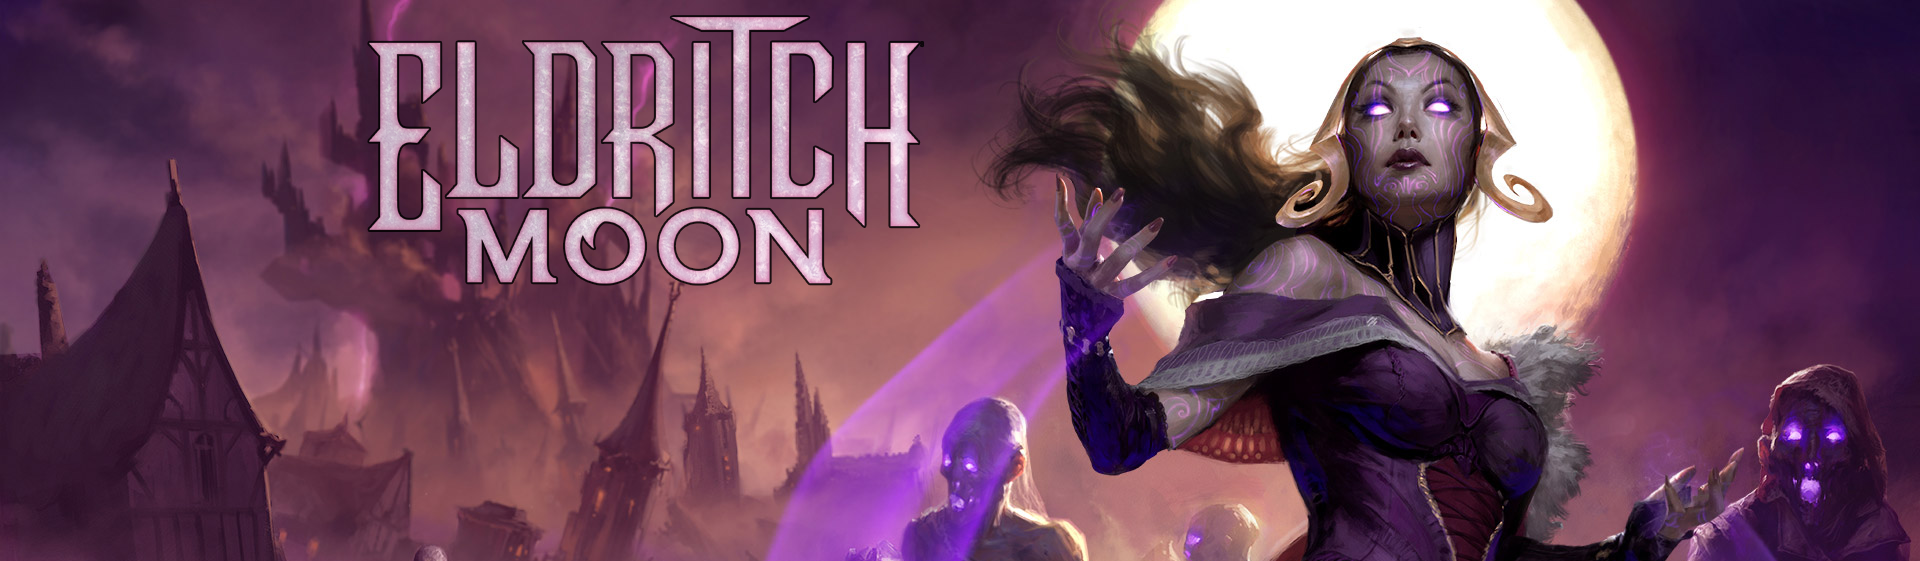 eldritch moon logo header.png